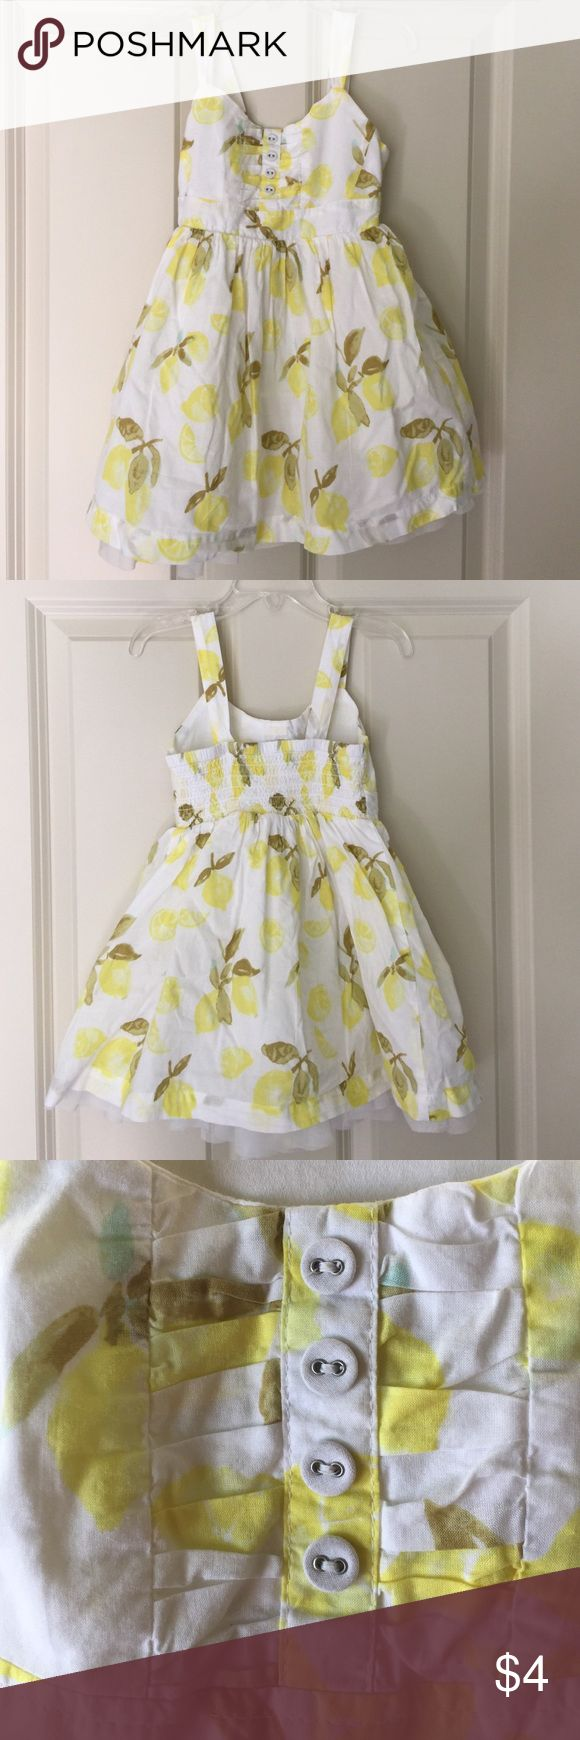 Lemon dress, Bundle for @dadl: Cherokee brand dress.  Love lemon print!  Perfect dress for Spring or Summer time for your little girl.  Had elastic on the back for comfort, and tule at the bottom of the dress for a fun and flaring style.  Size 4-5.  Worn a few times and is in great condition. Cherokee Dresses Casual